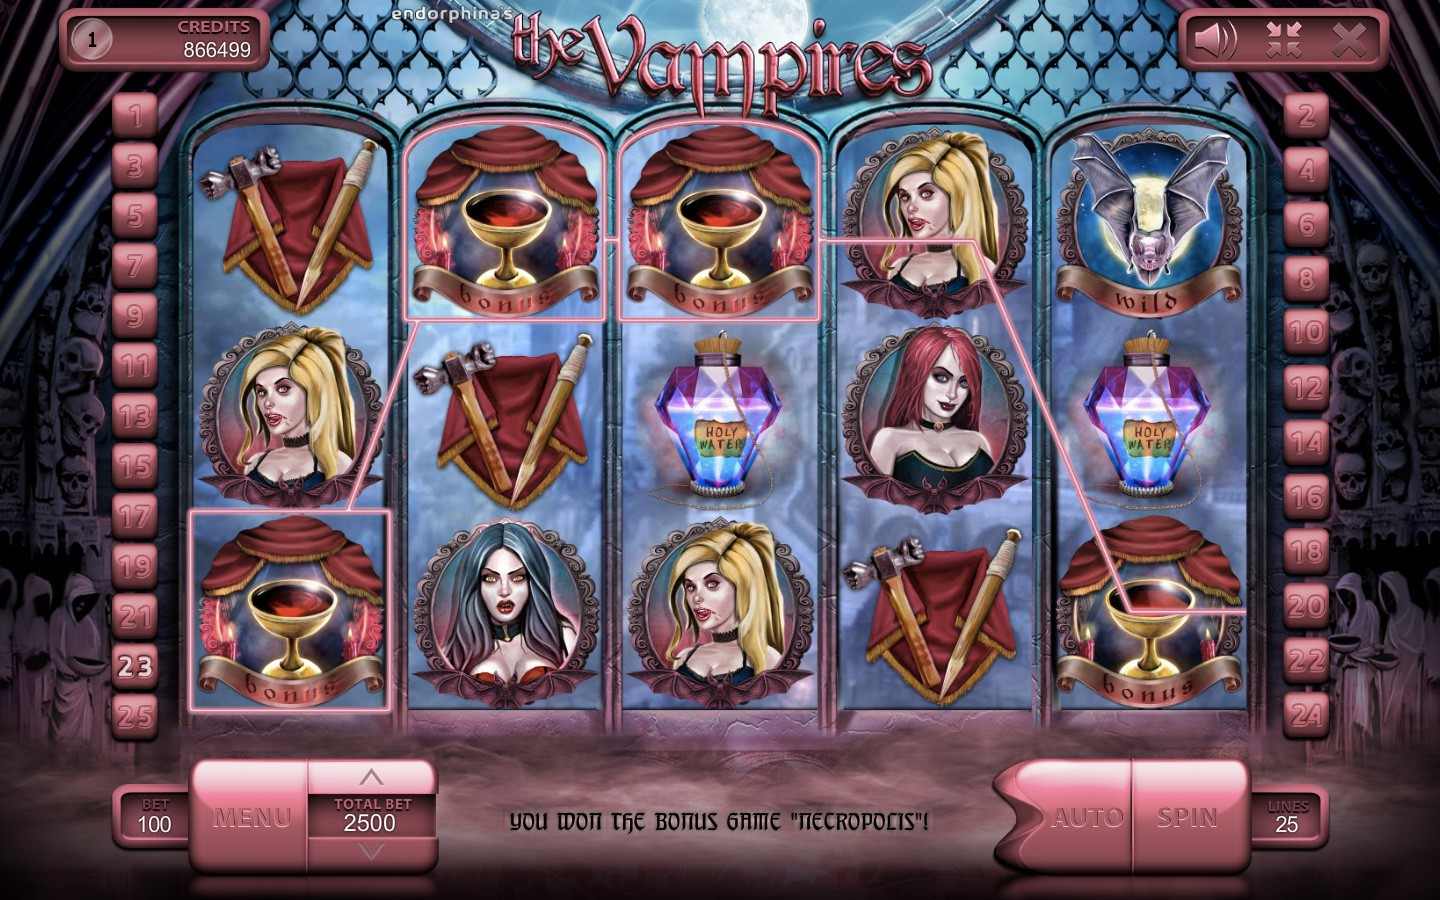 The Vampires Slot Game - Try it now in Your Web Browser